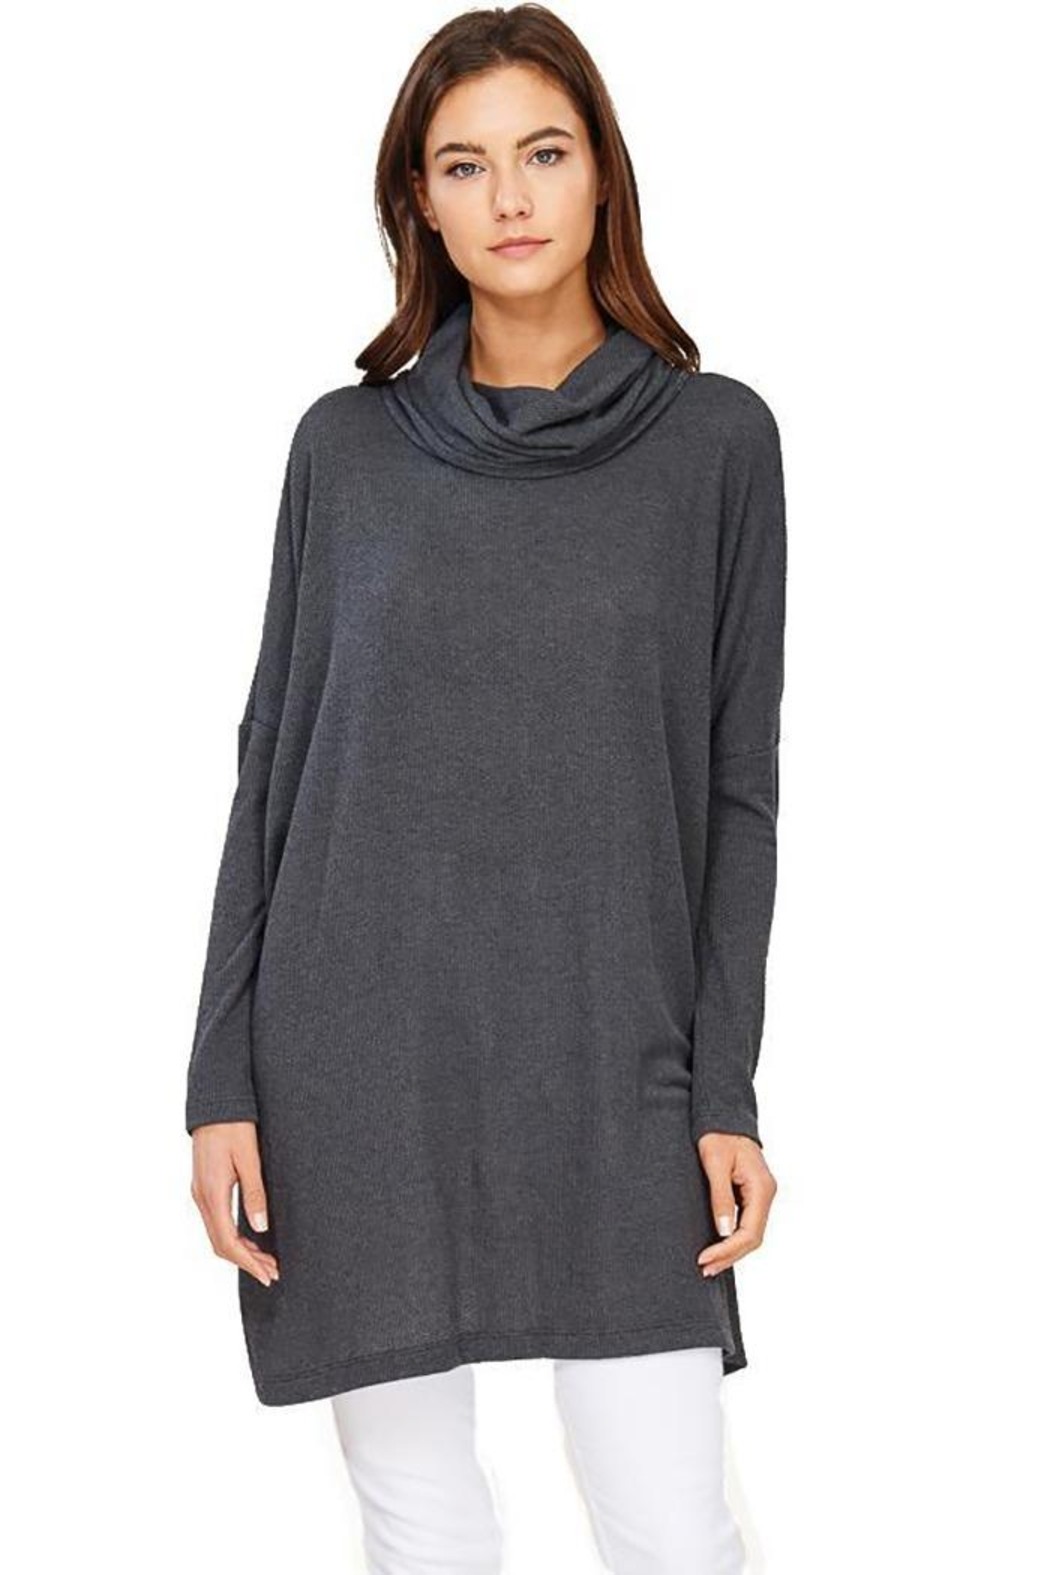 Audrey 3+1 Edie Turtleneck Sweater Dress - Front Full Image